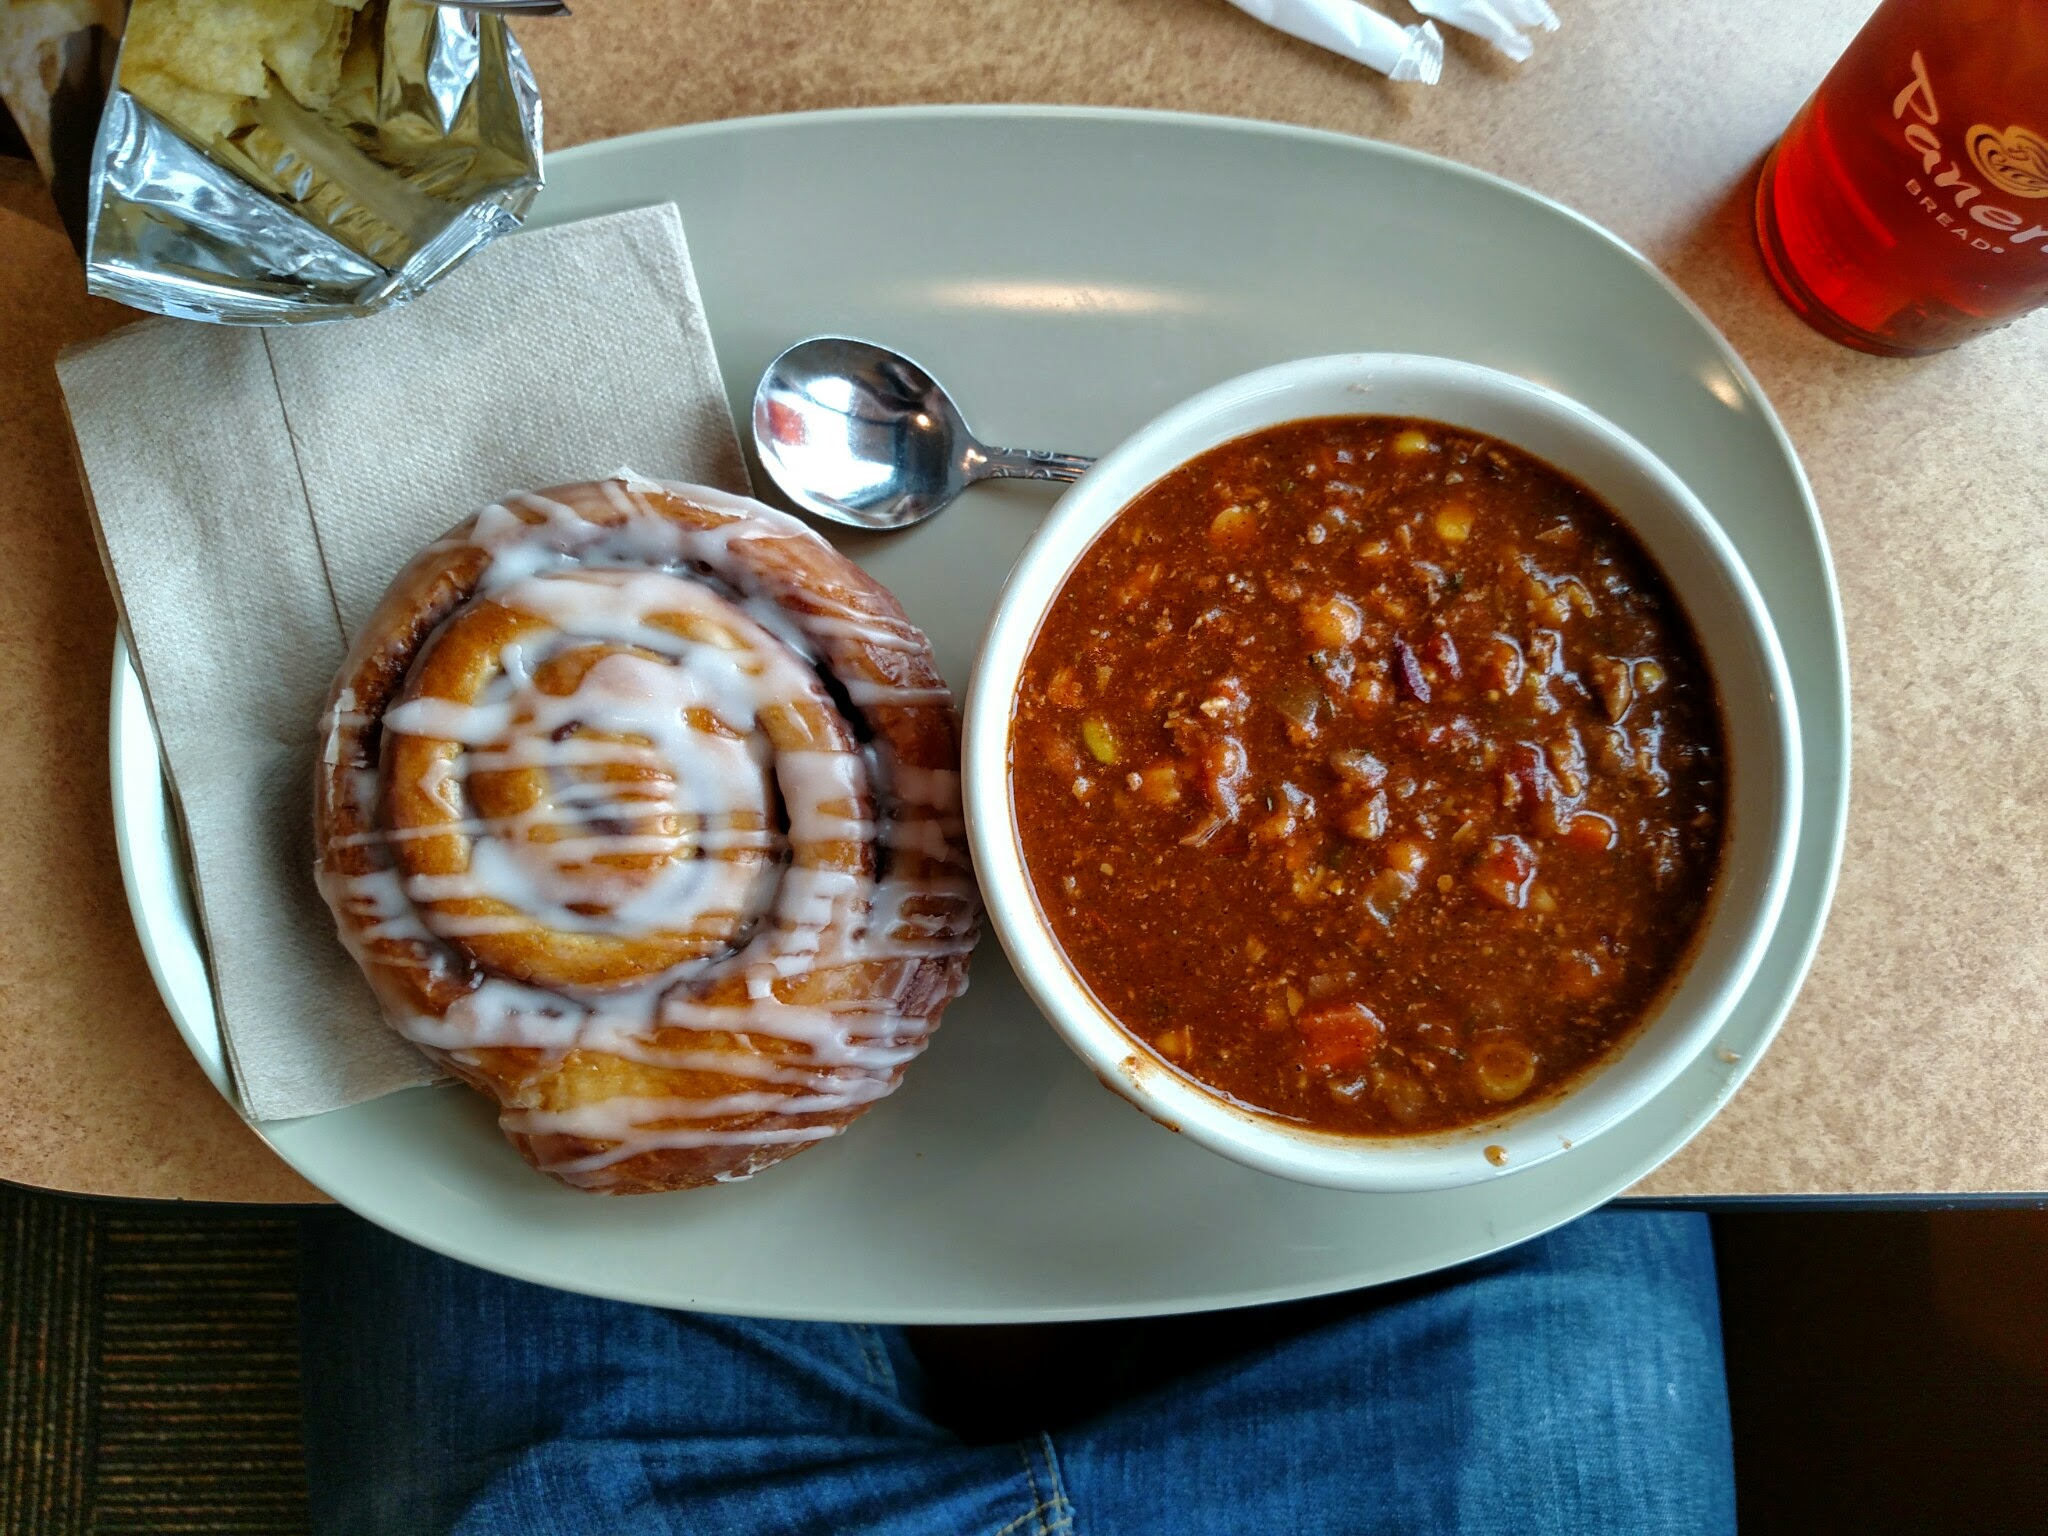 An image of a bowl of chili and a cinnamon roll